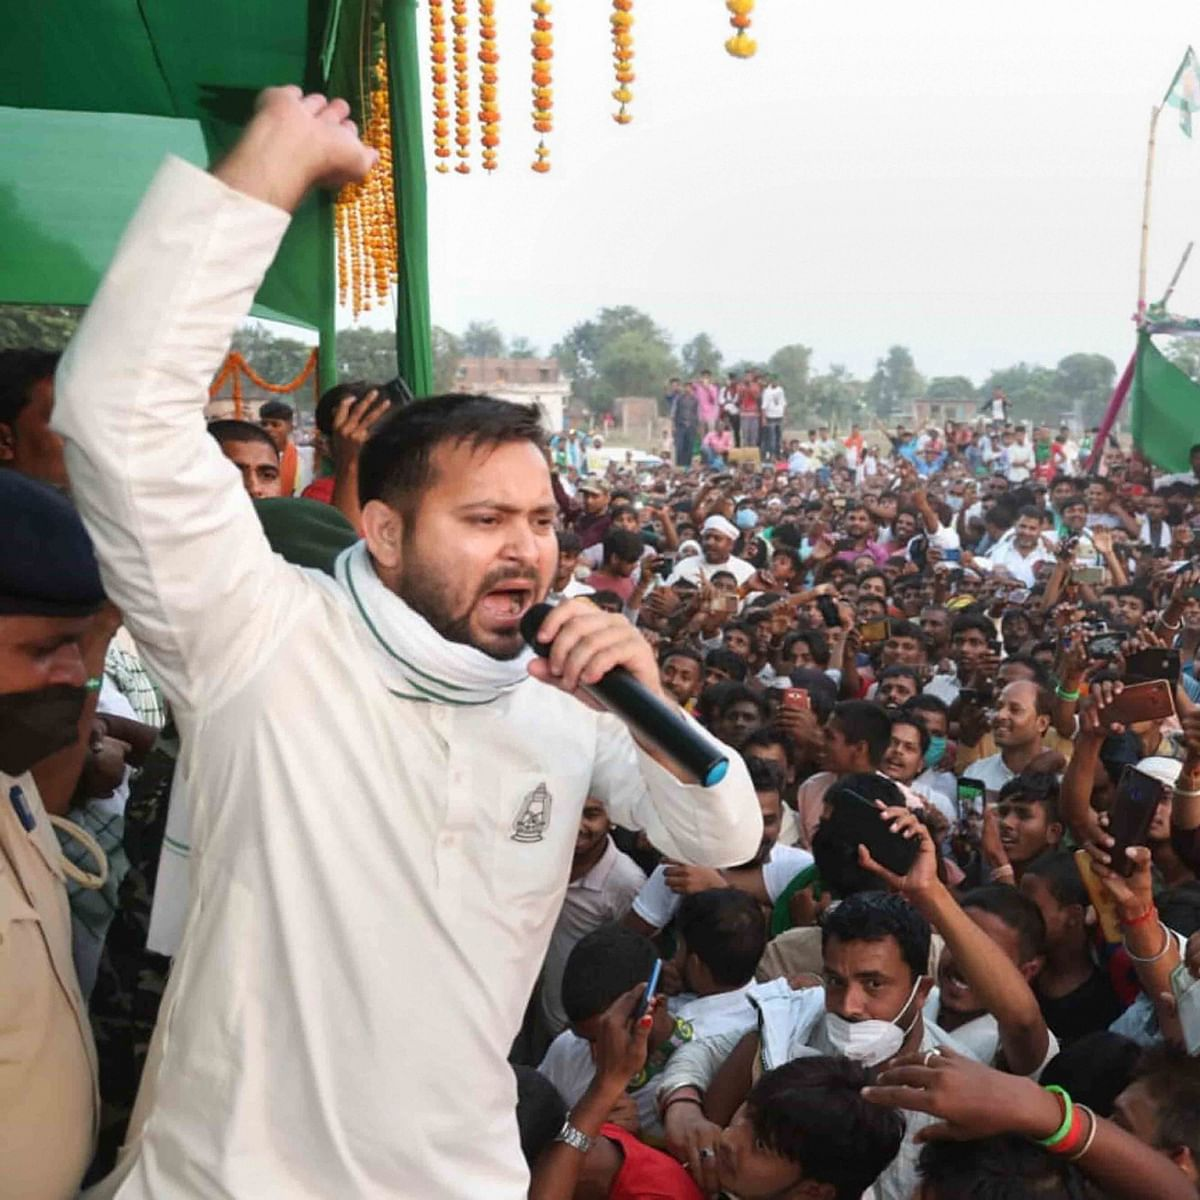 Bihar Election 2020: Mahagathbandhan's CM face Tejashwi Yadav maintains lead in Raghopur